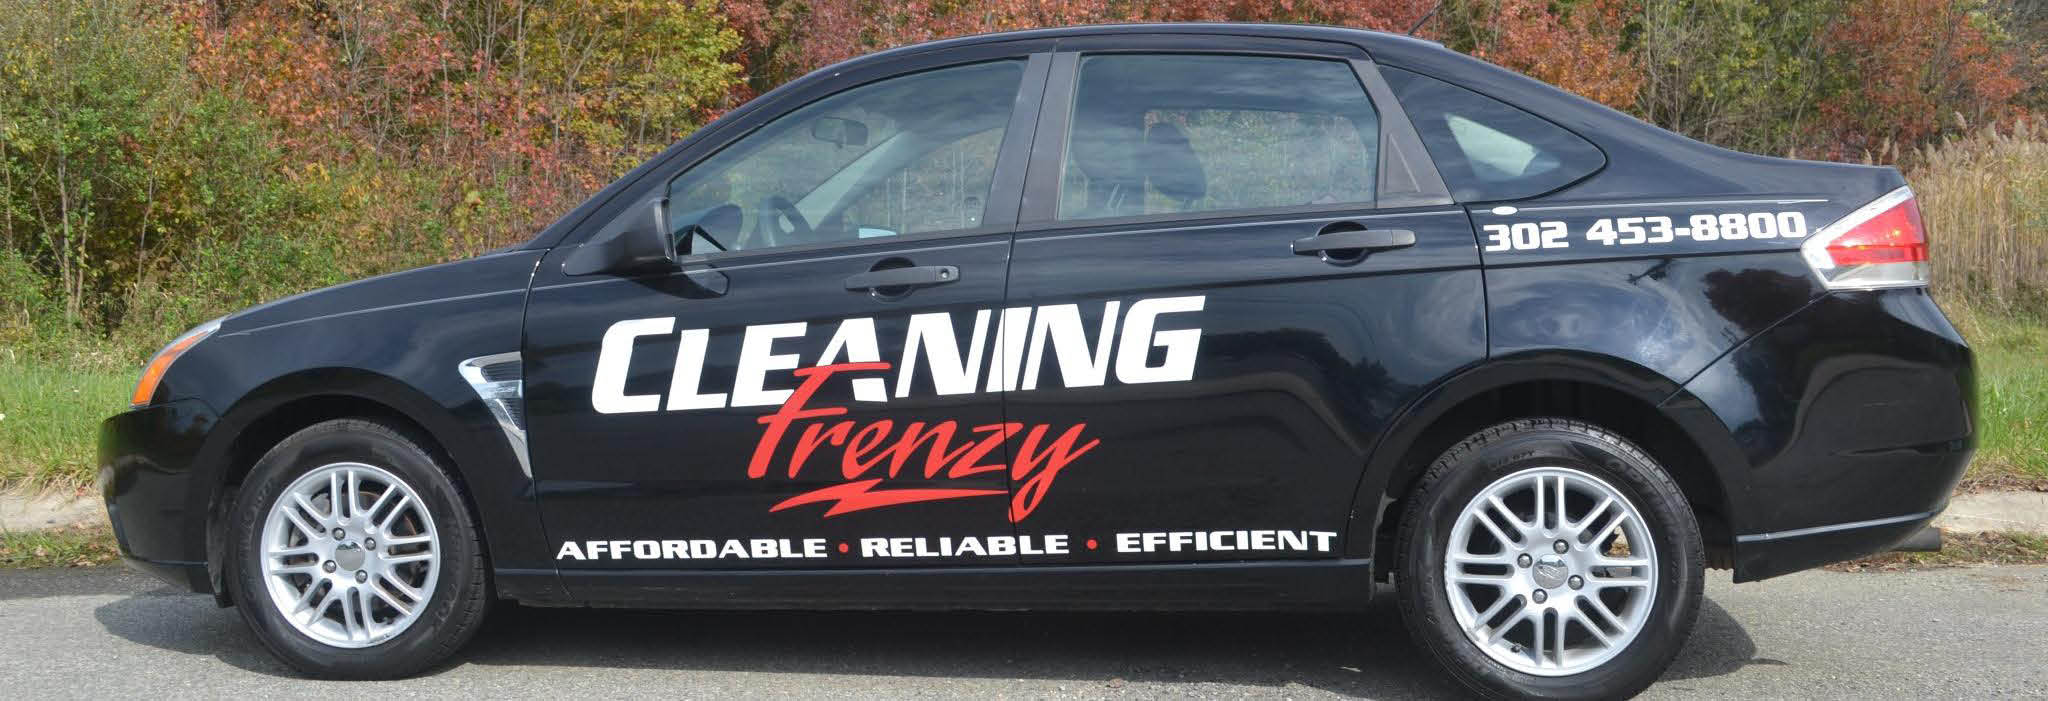 cleaning frenzy,house cleaning,cleaning service,maids,discount,cleaning services in delaware,